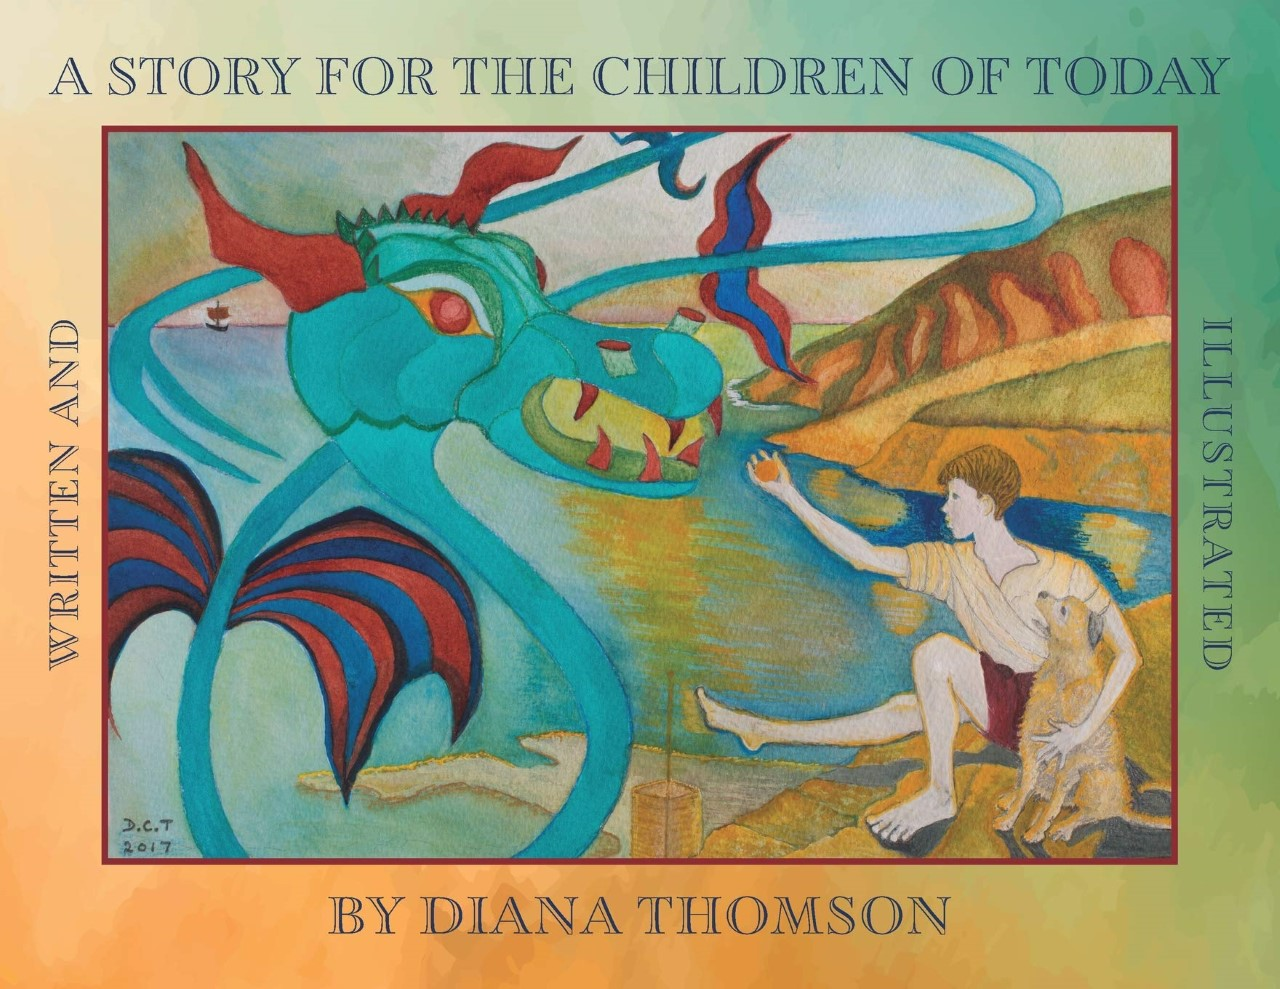 A Story for Children - front page